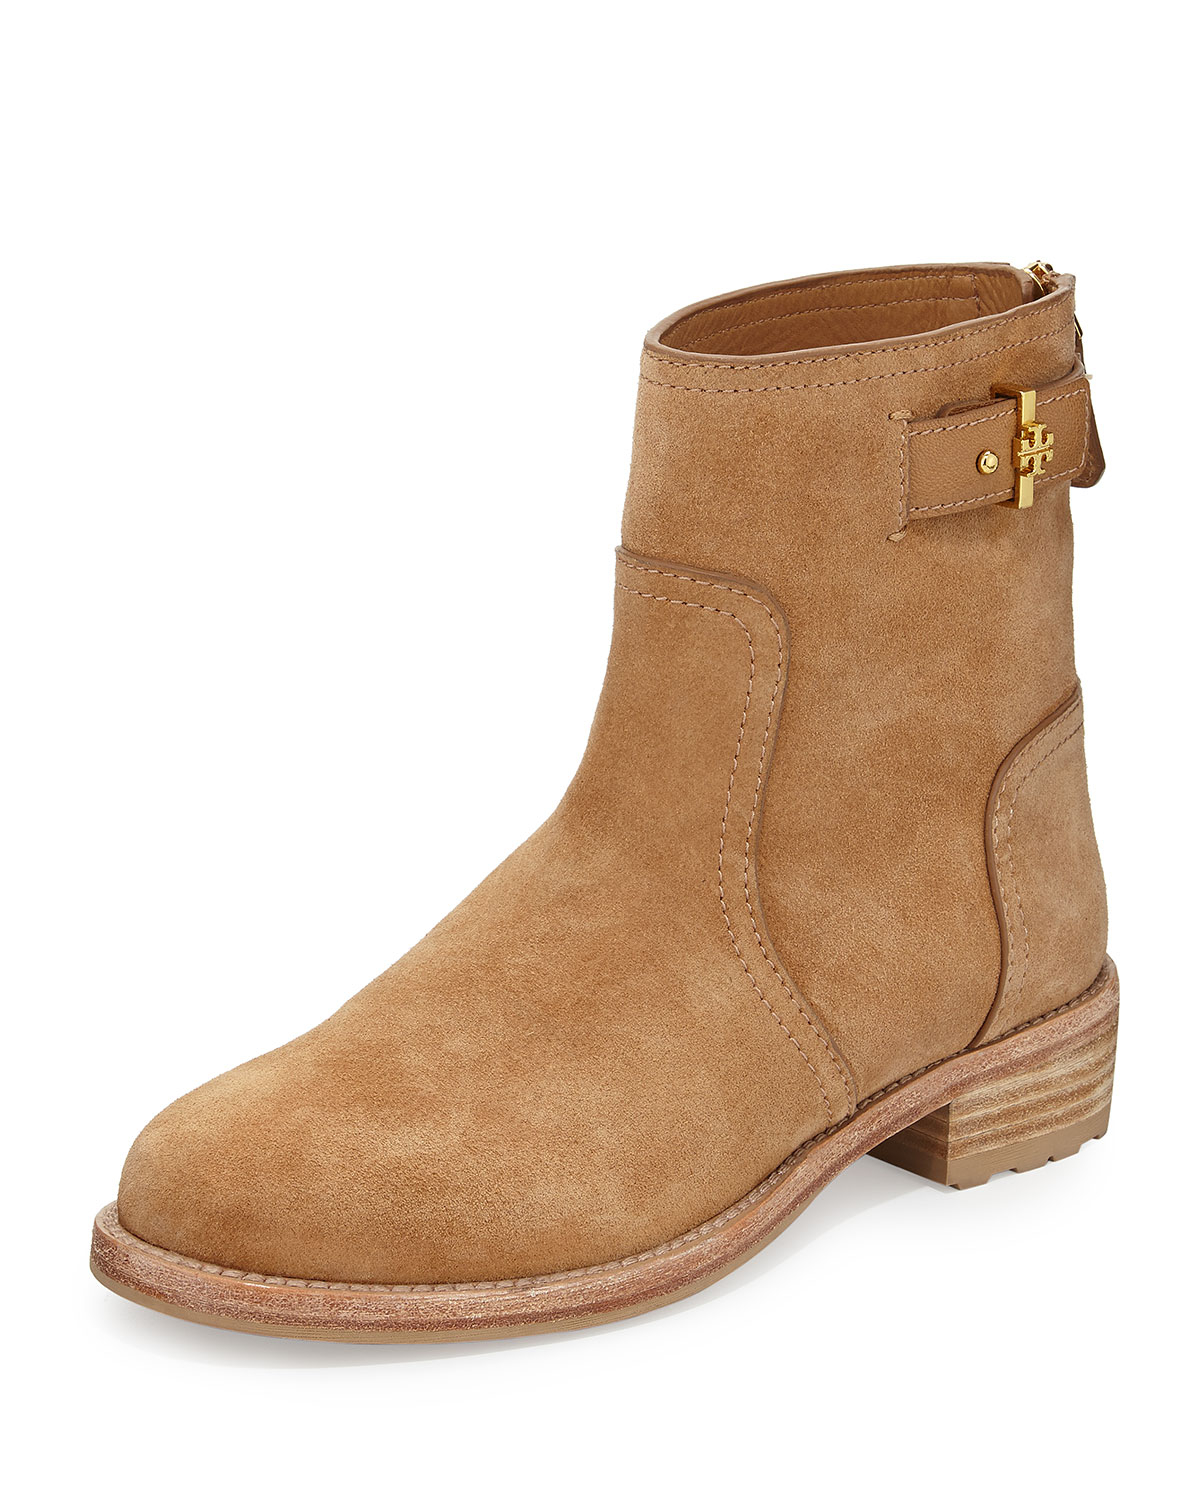 tory burch selena suede ankle boot in beige tuscan tan lyst. Black Bedroom Furniture Sets. Home Design Ideas